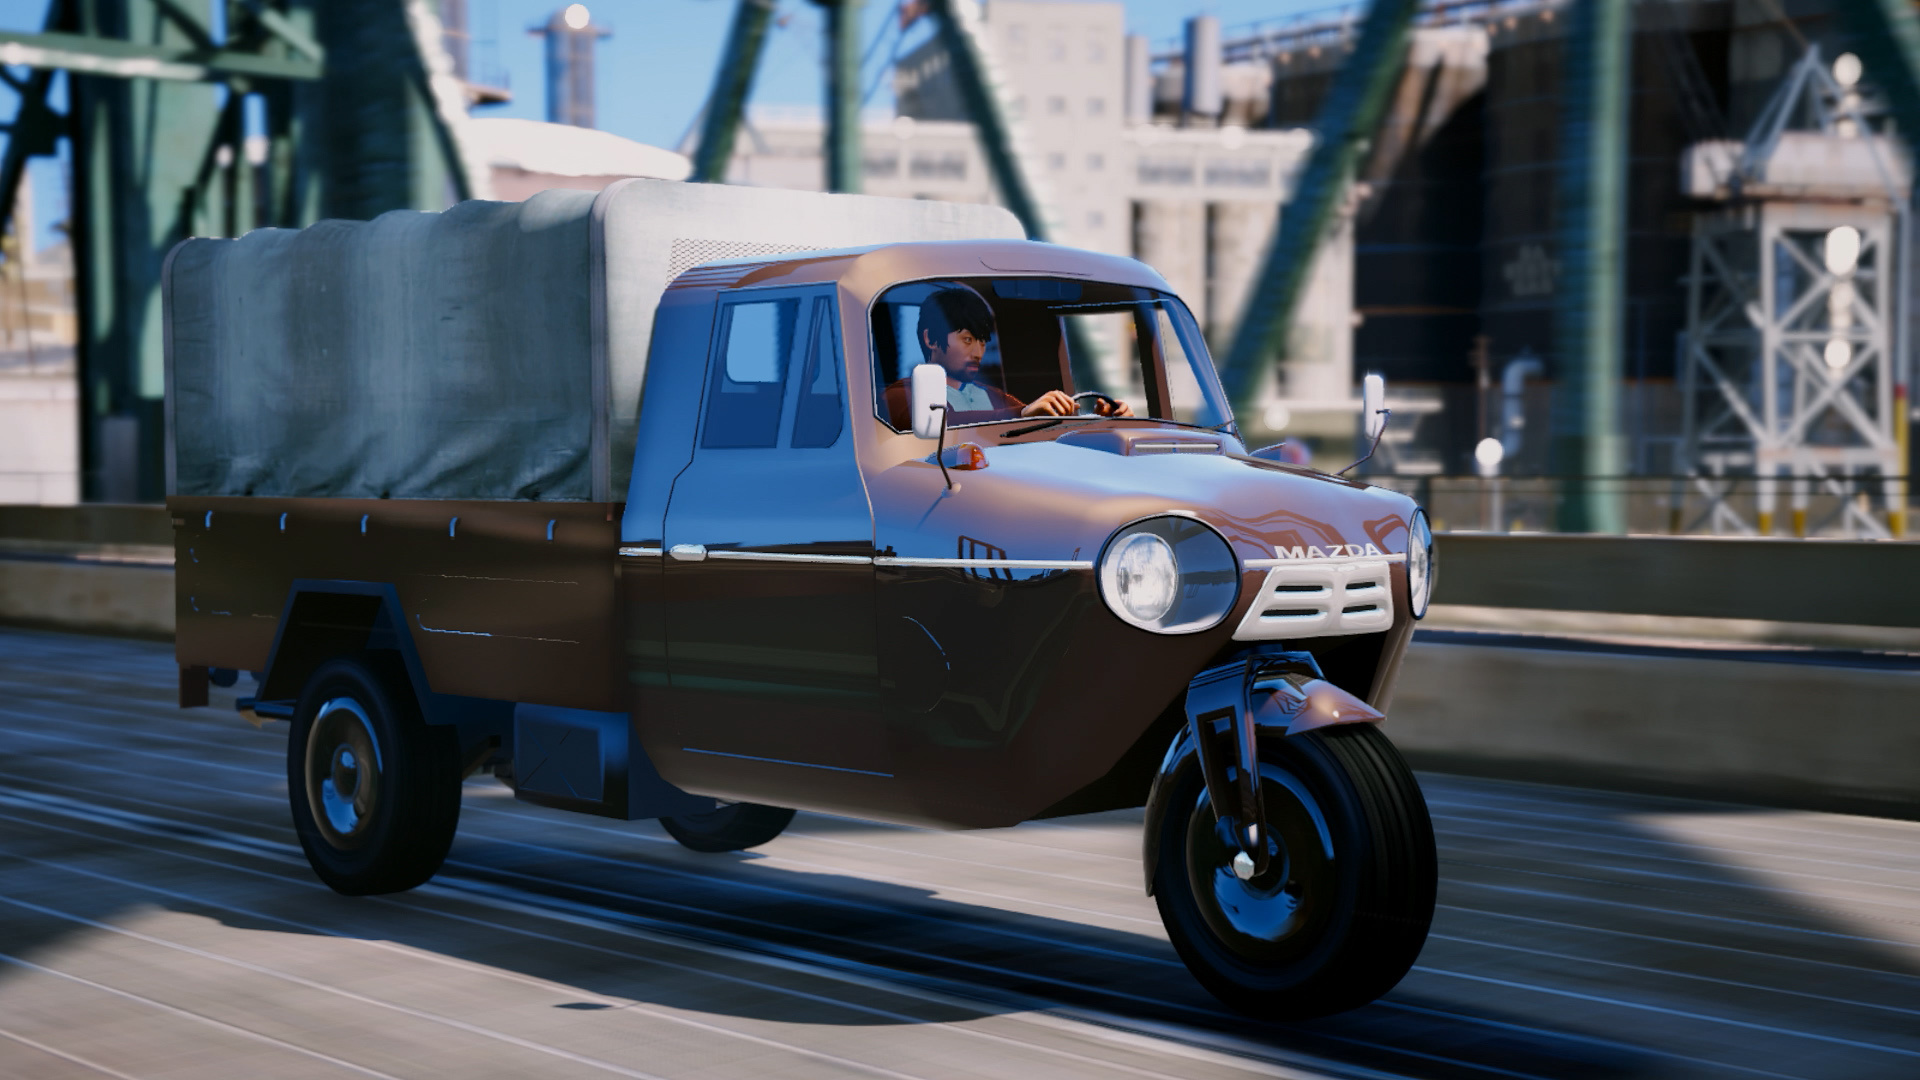 1956 mazda t 2000 project gta5 mods 5c2f8f 1956 mazda t 2000 eve 1 thecheapjerseys Gallery